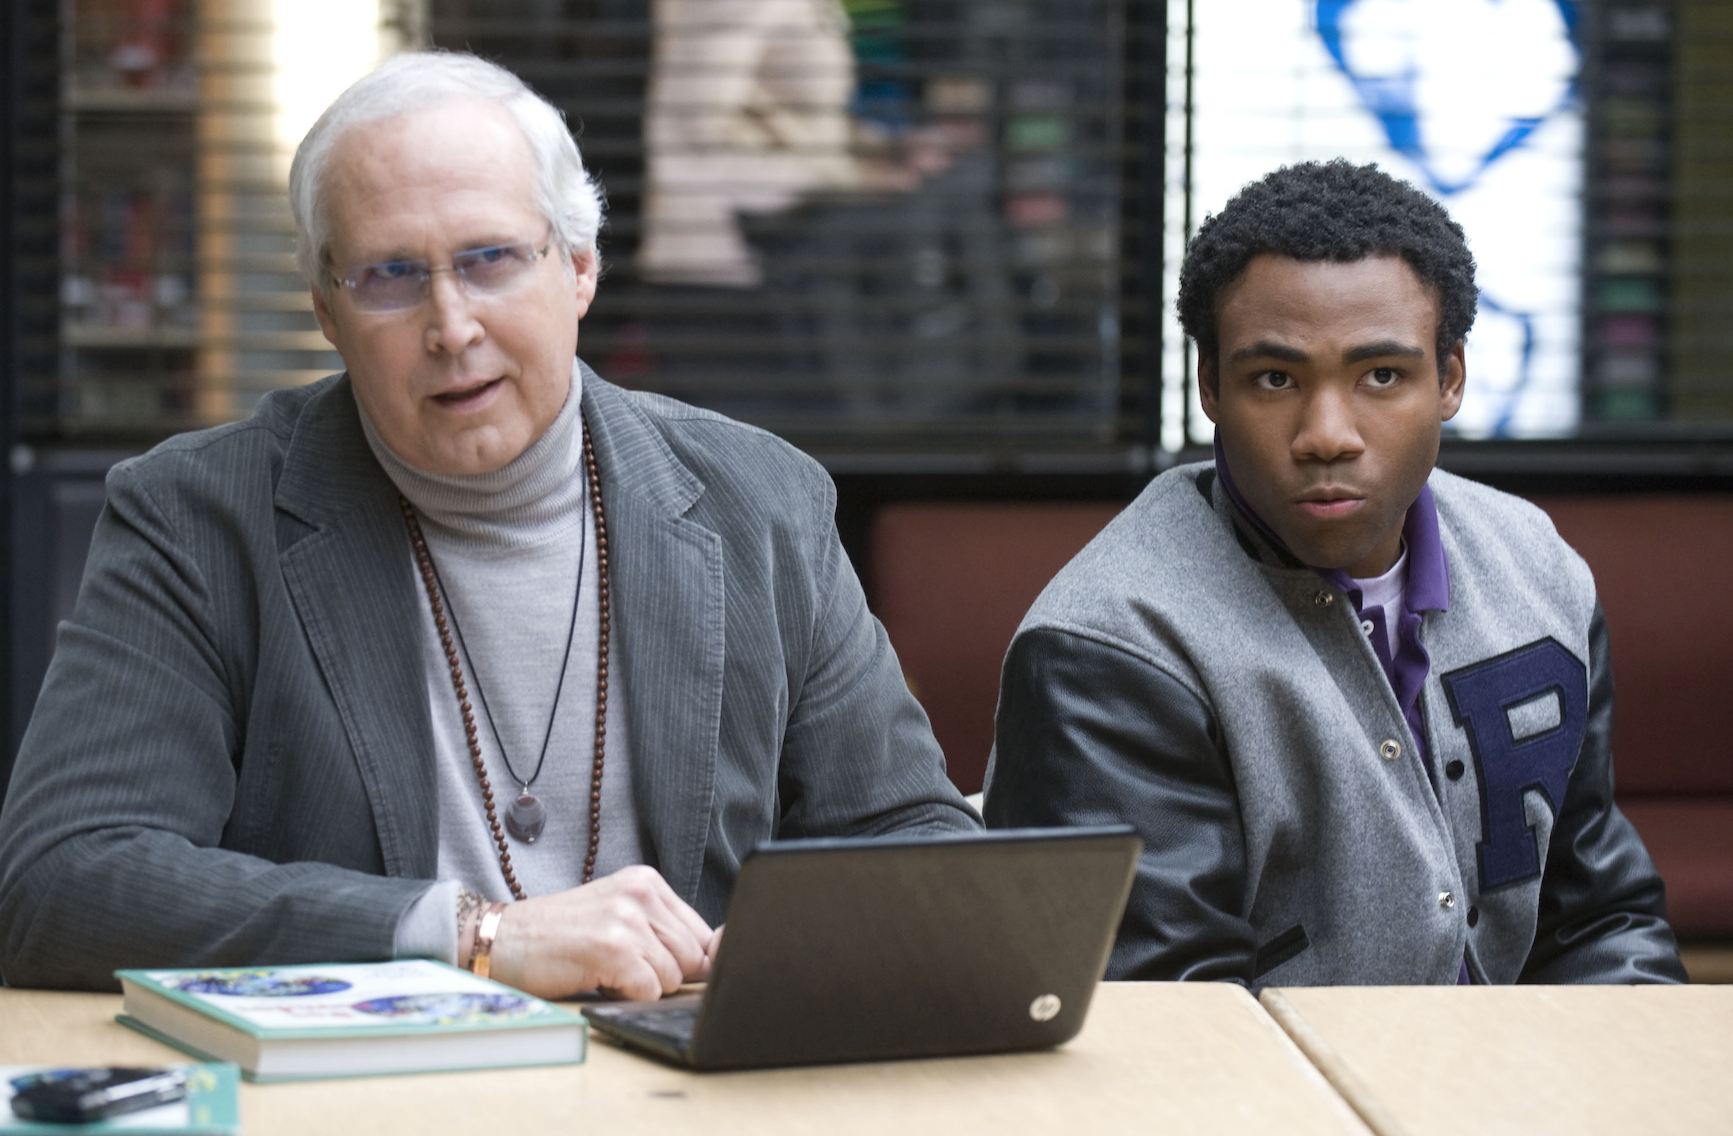 Chevy Chase and Donald Glover as Pierce Hawthorne and Troy Barnes, respectively, in the TV show Community